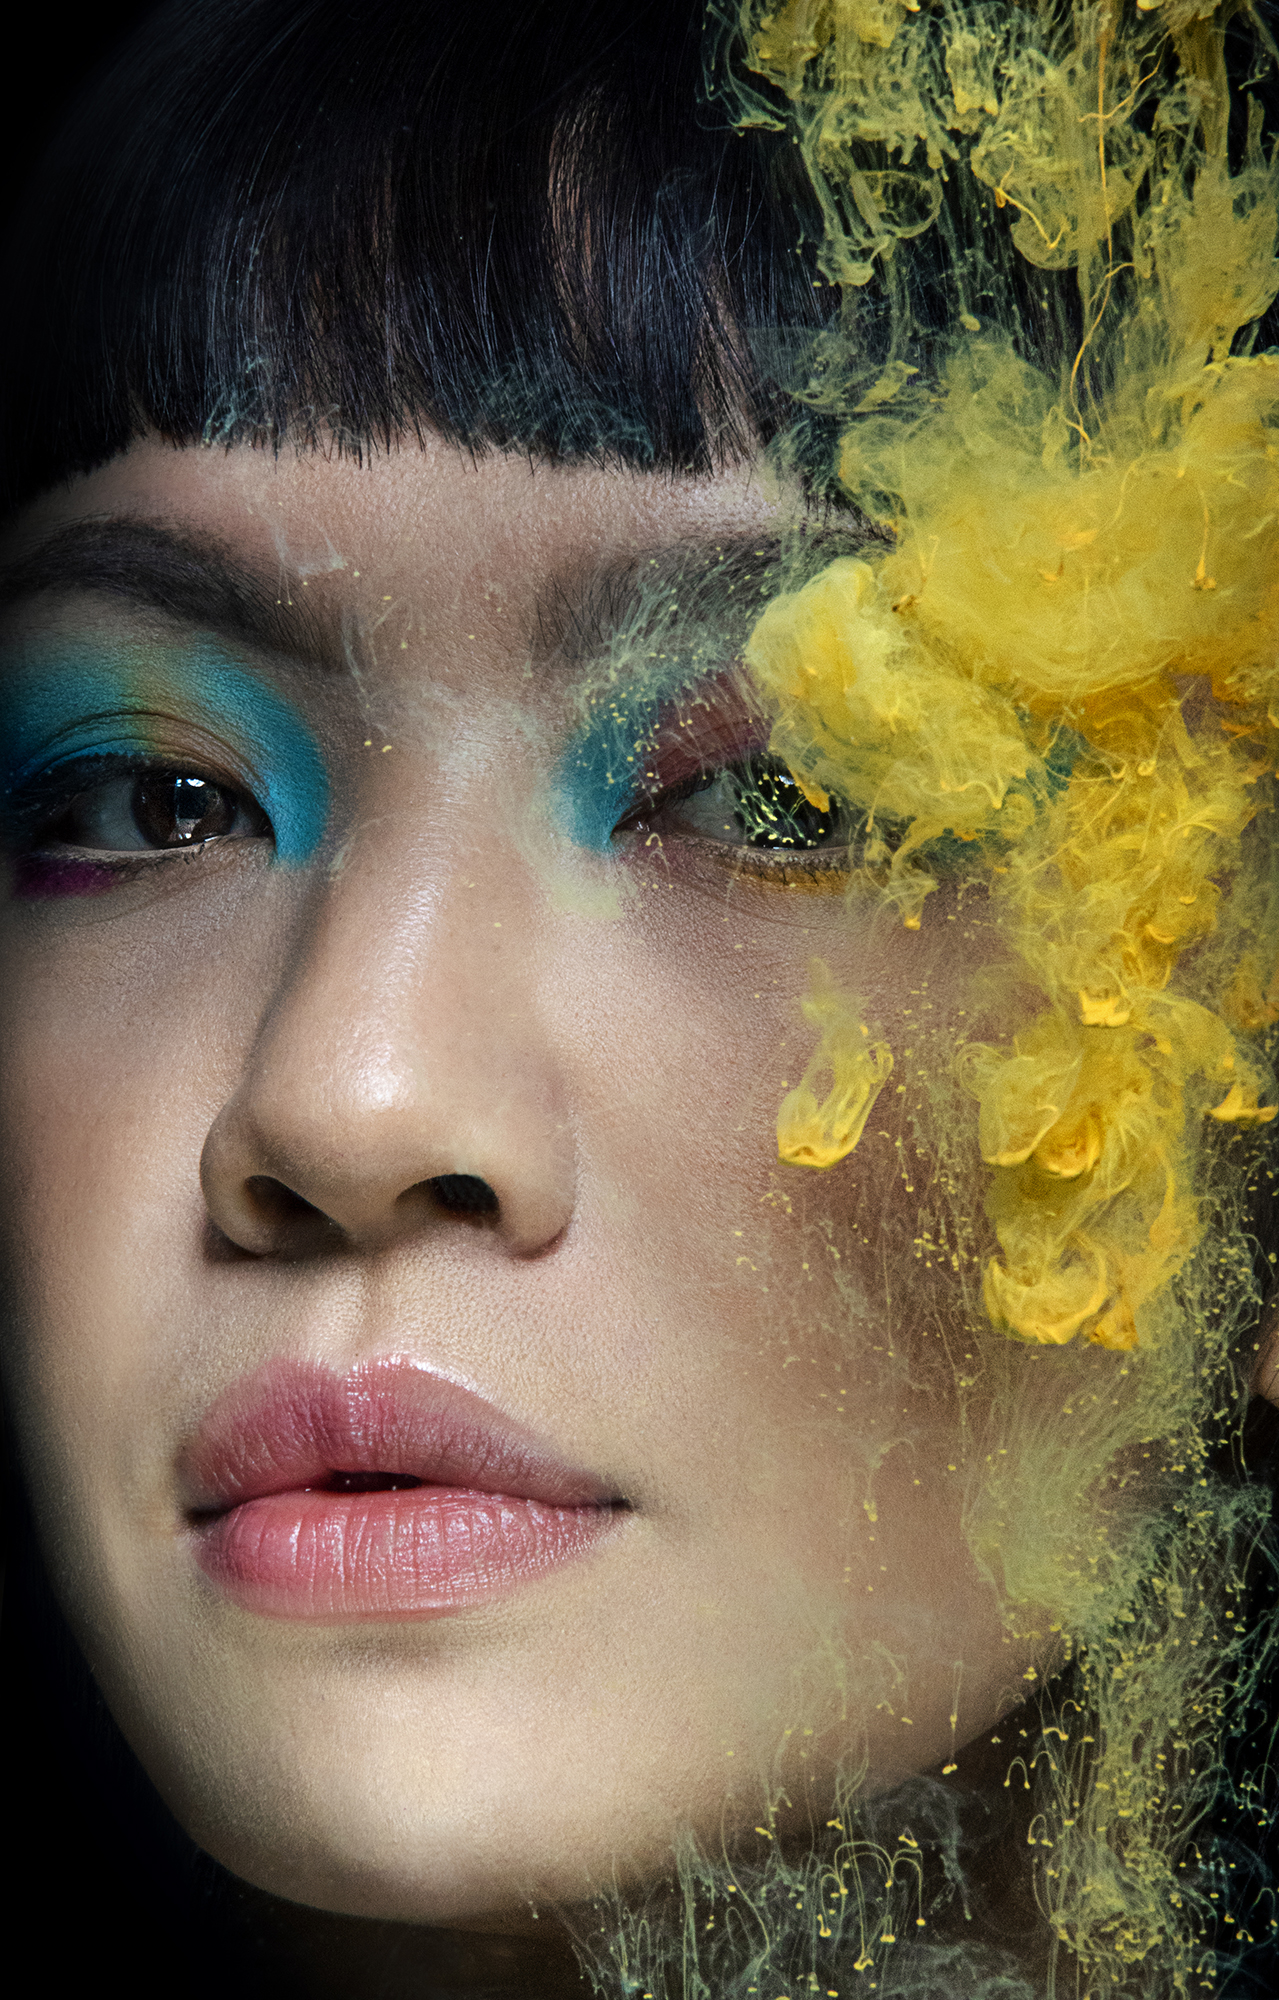 Press shot of singer, songwriter and music producer Fifi Rong by Yvonne Hartmann